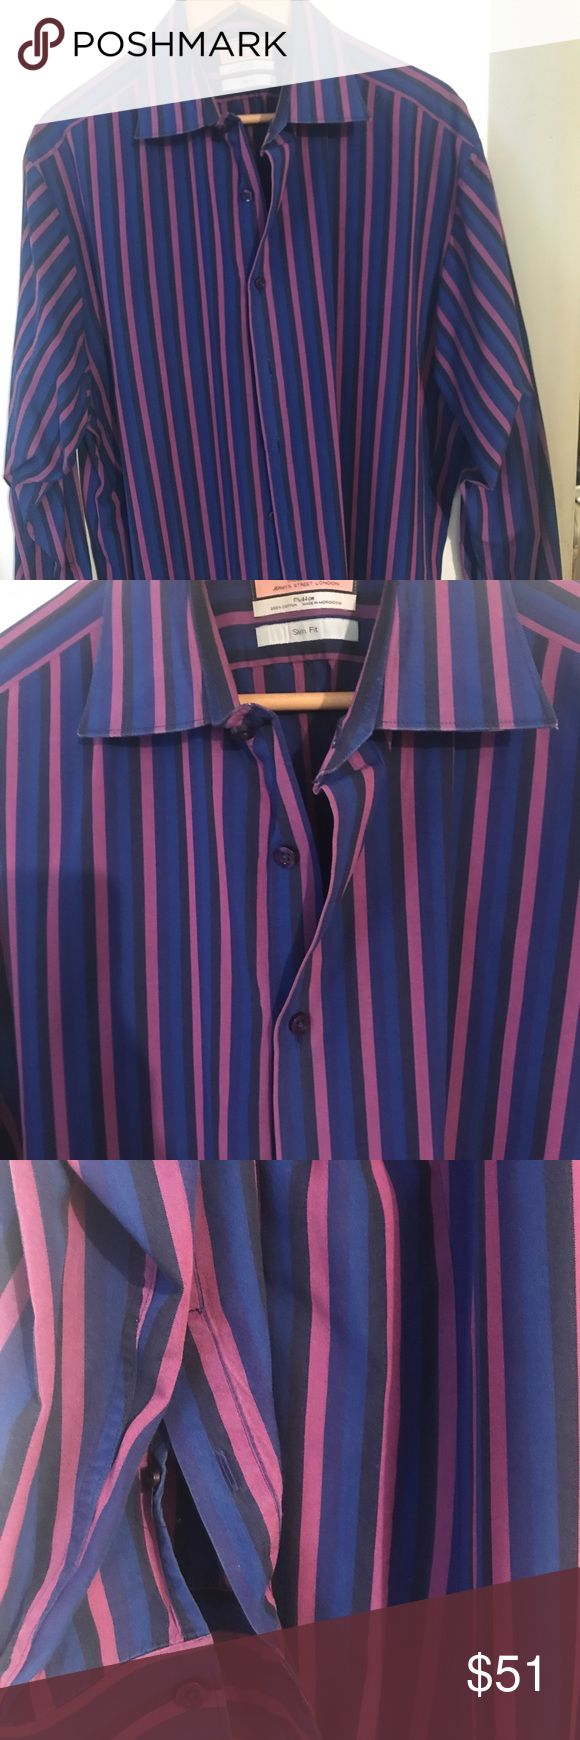 Pink Thomas Pink London striped slim fit dresshirt Excellent condition dry cleaned PINK Shirts Dress Shirts